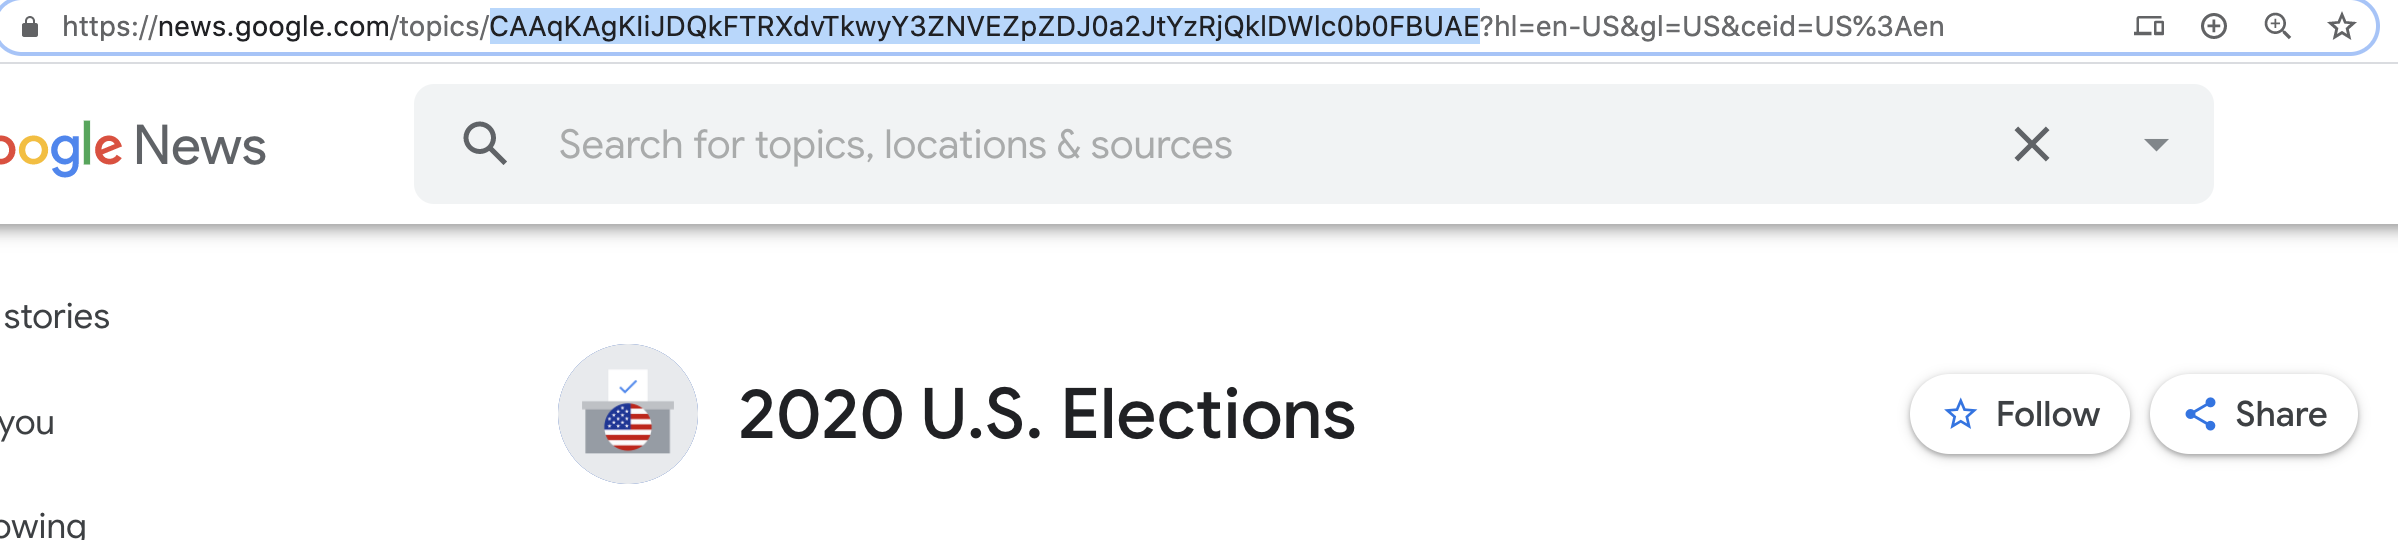 us_elections_hash.png